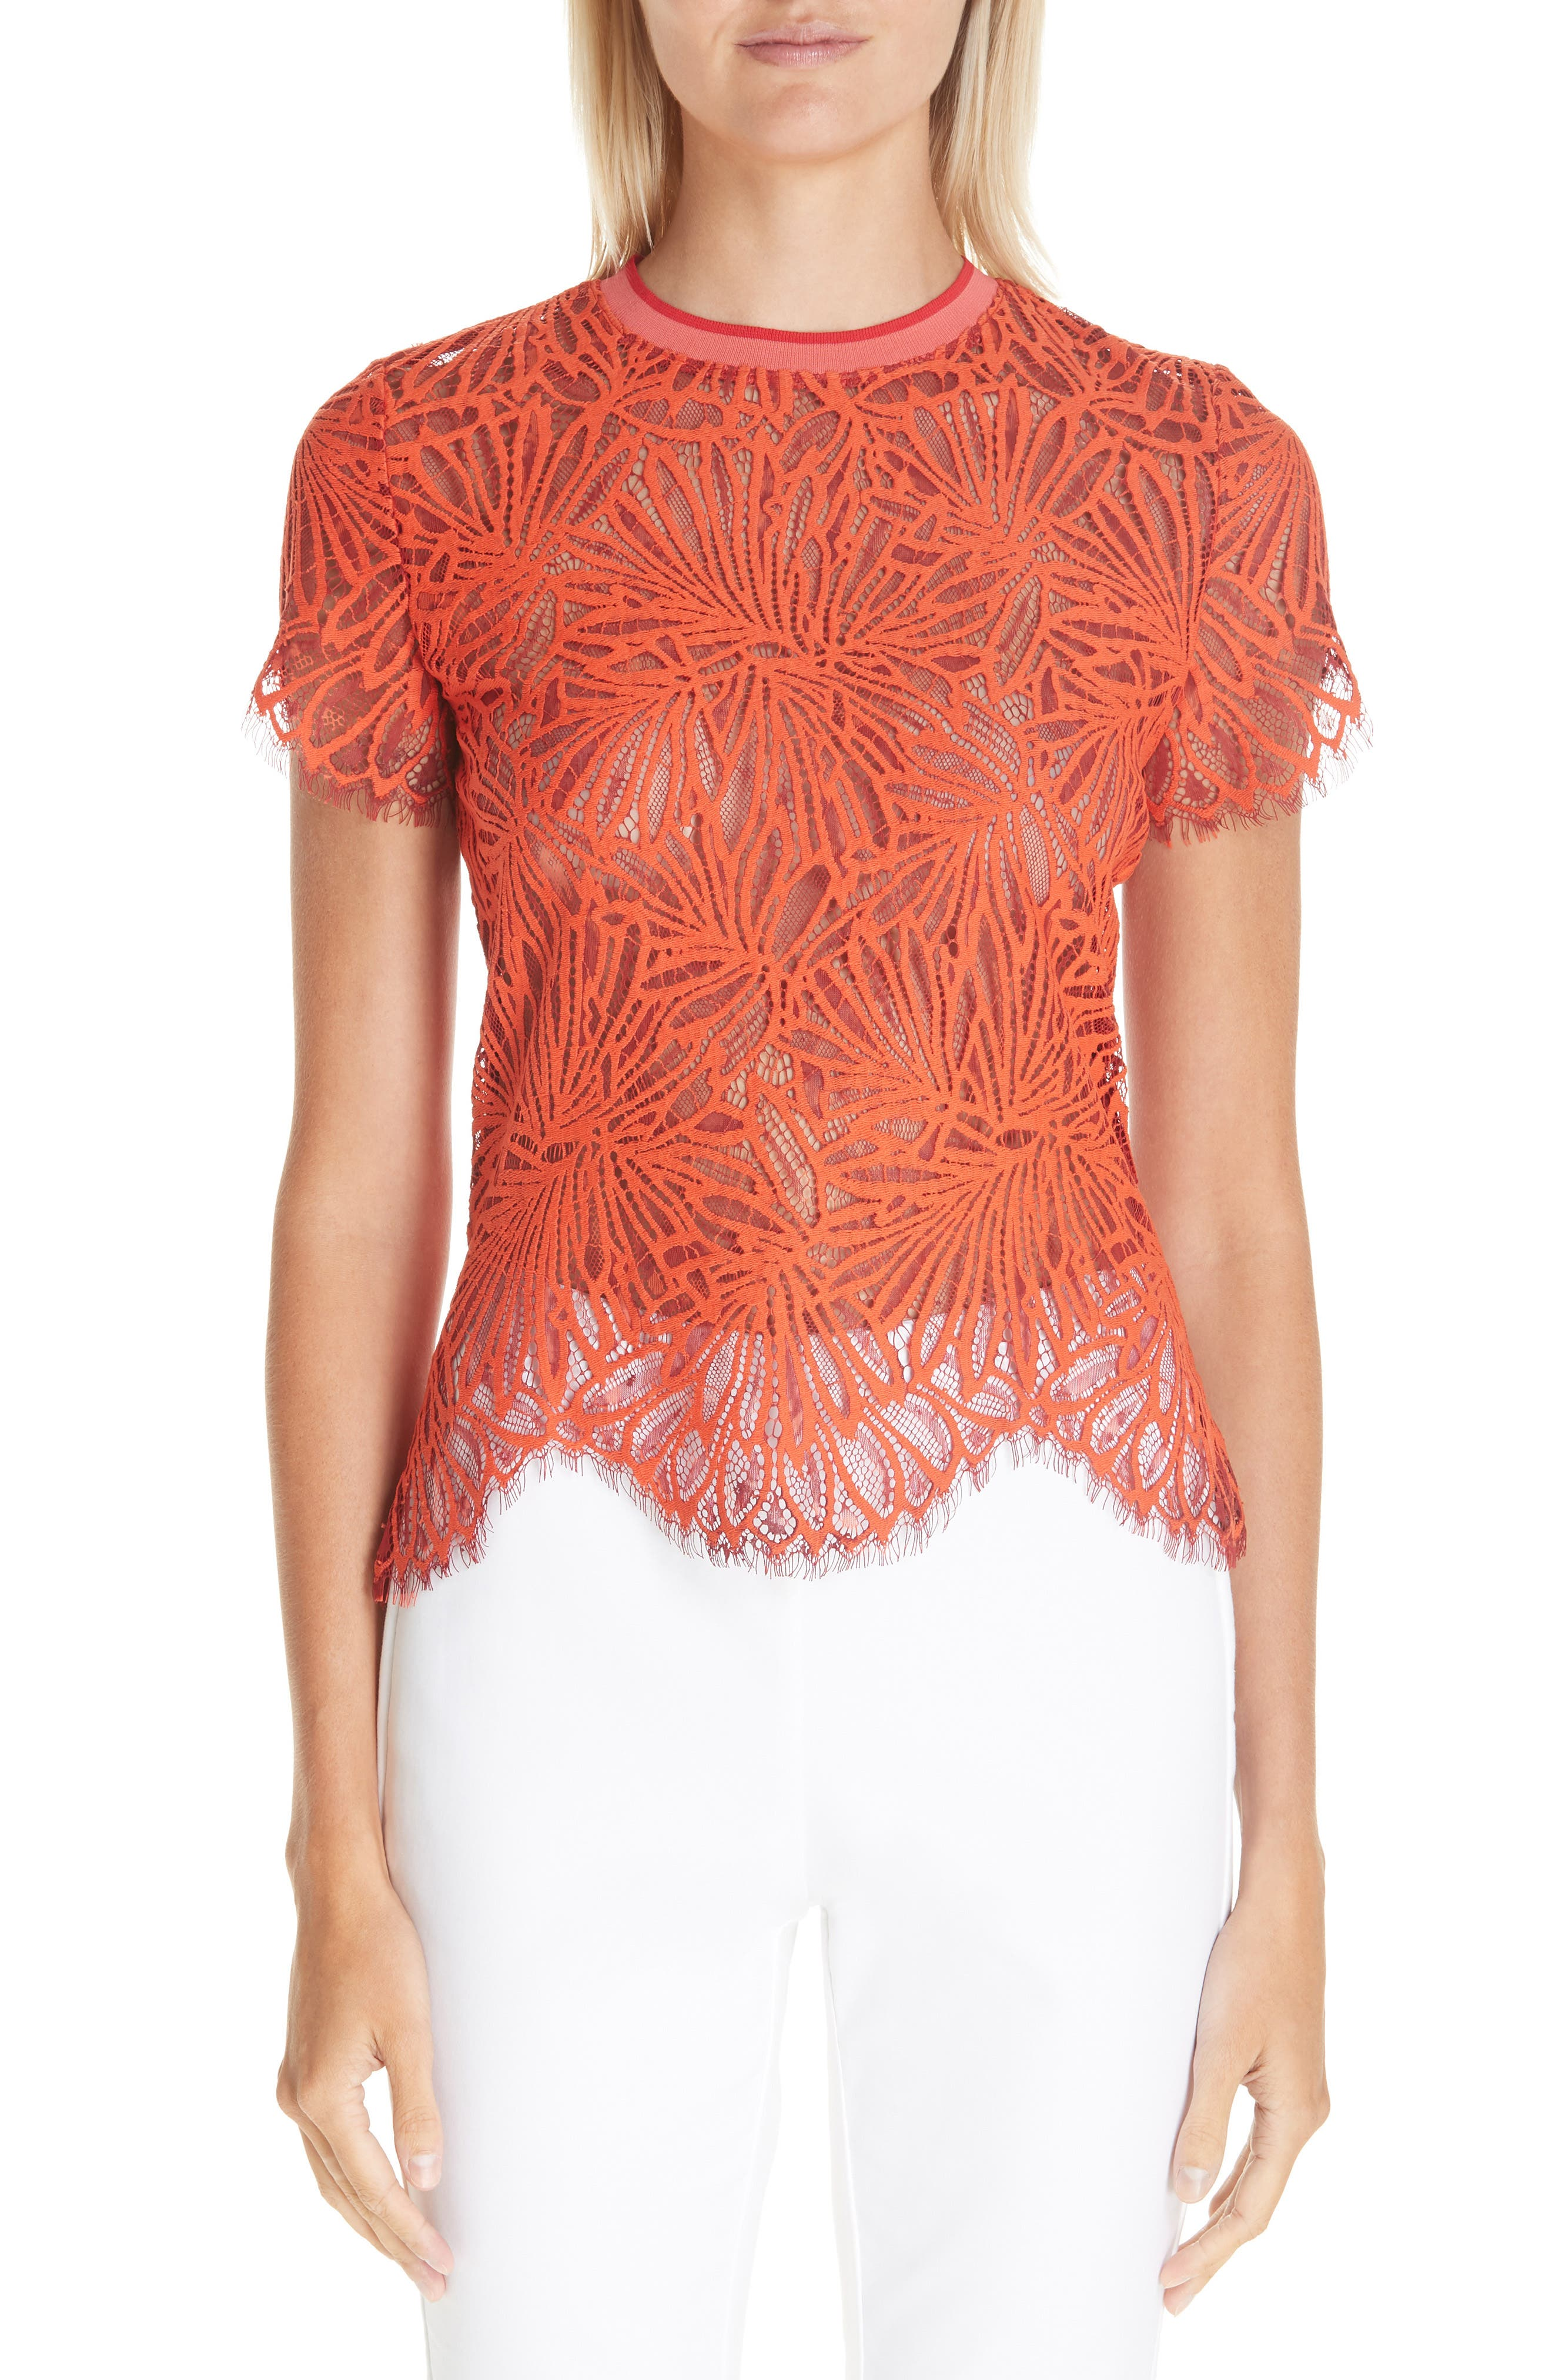 PROENZA SCHOULER,                             Scalloped Stretch Lace Top,                             Main thumbnail 1, color,                             TANGERINE